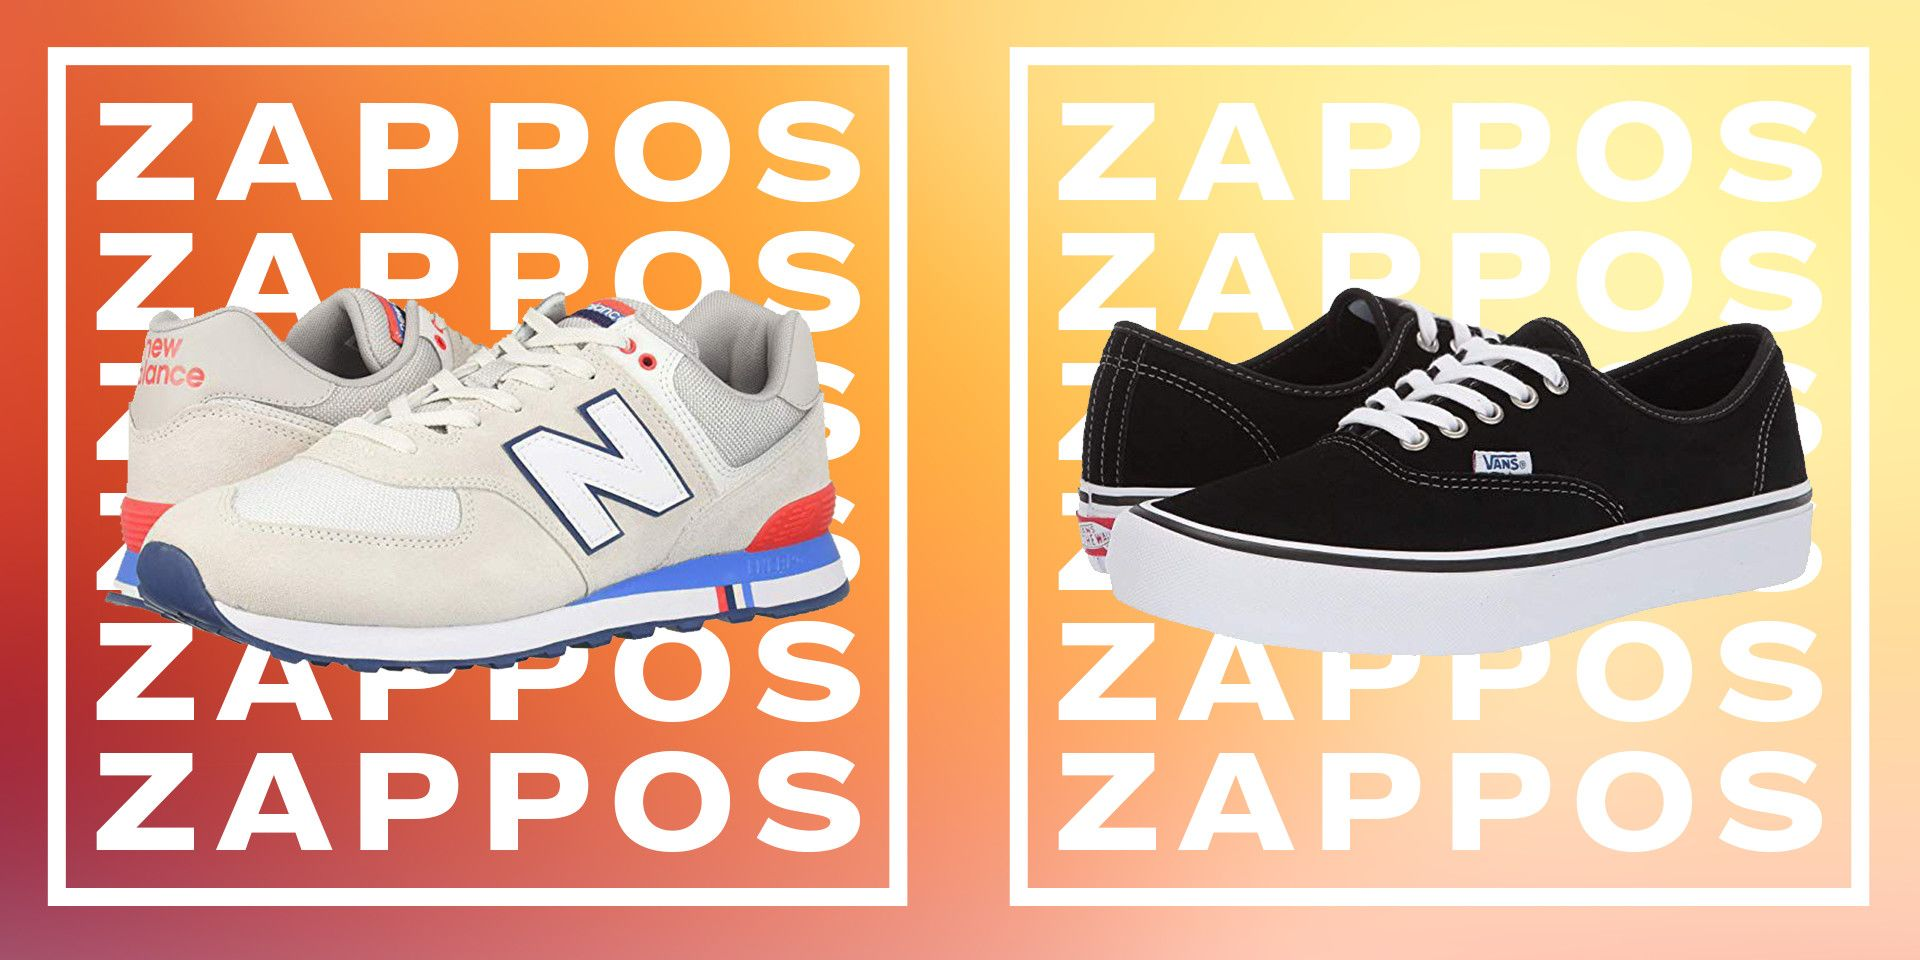 The Best Sneakers to Shop at the Gigantic Zappos Shoe Sale